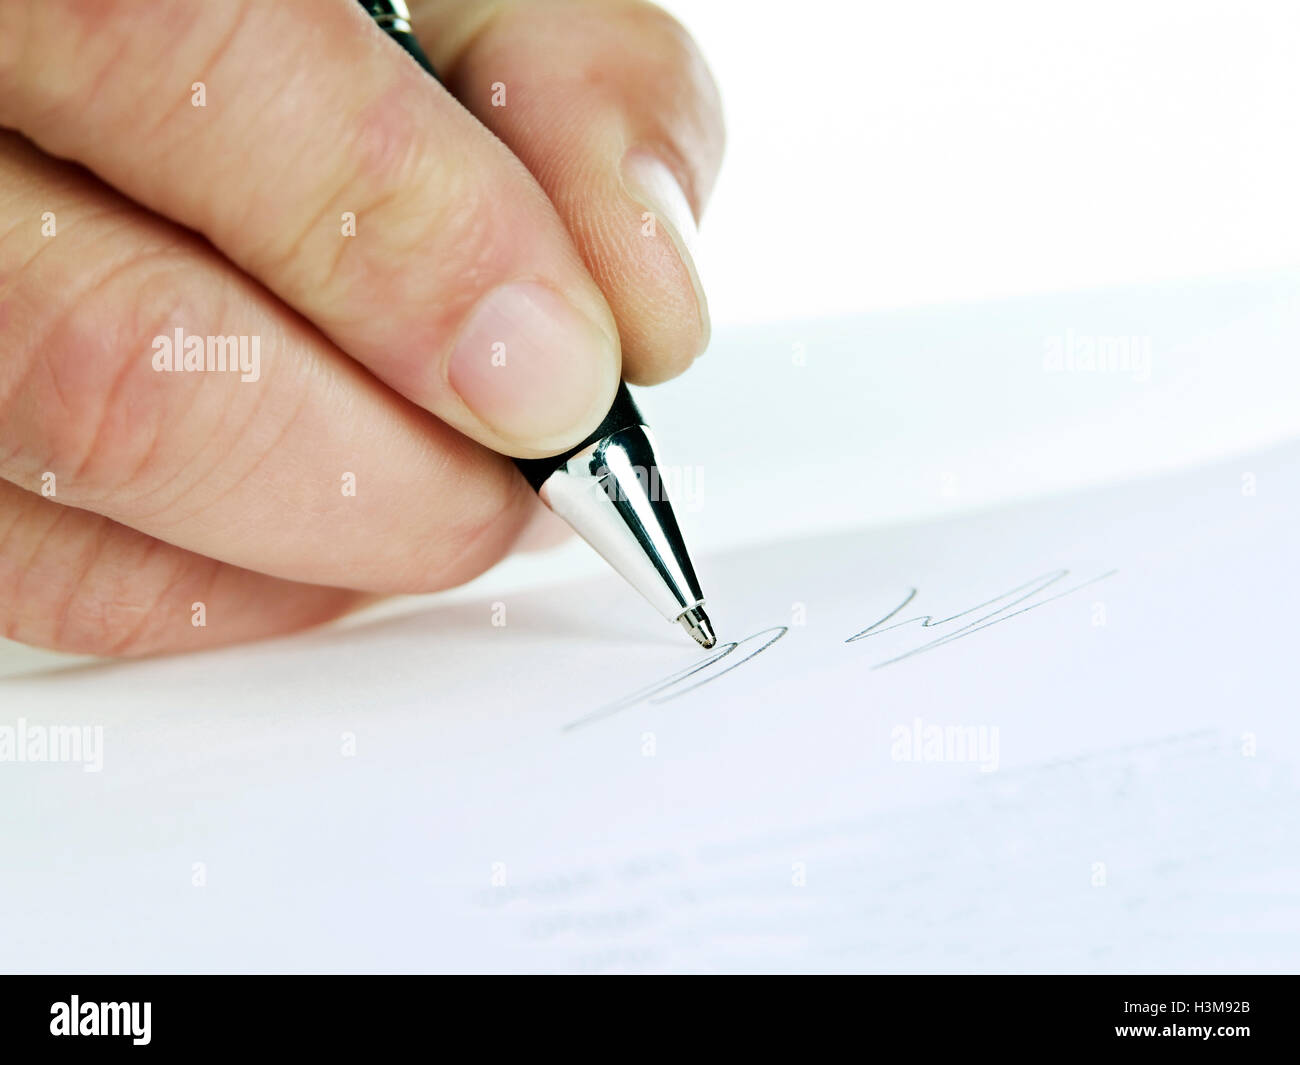 Close-up of a hand while signing - Stock Image